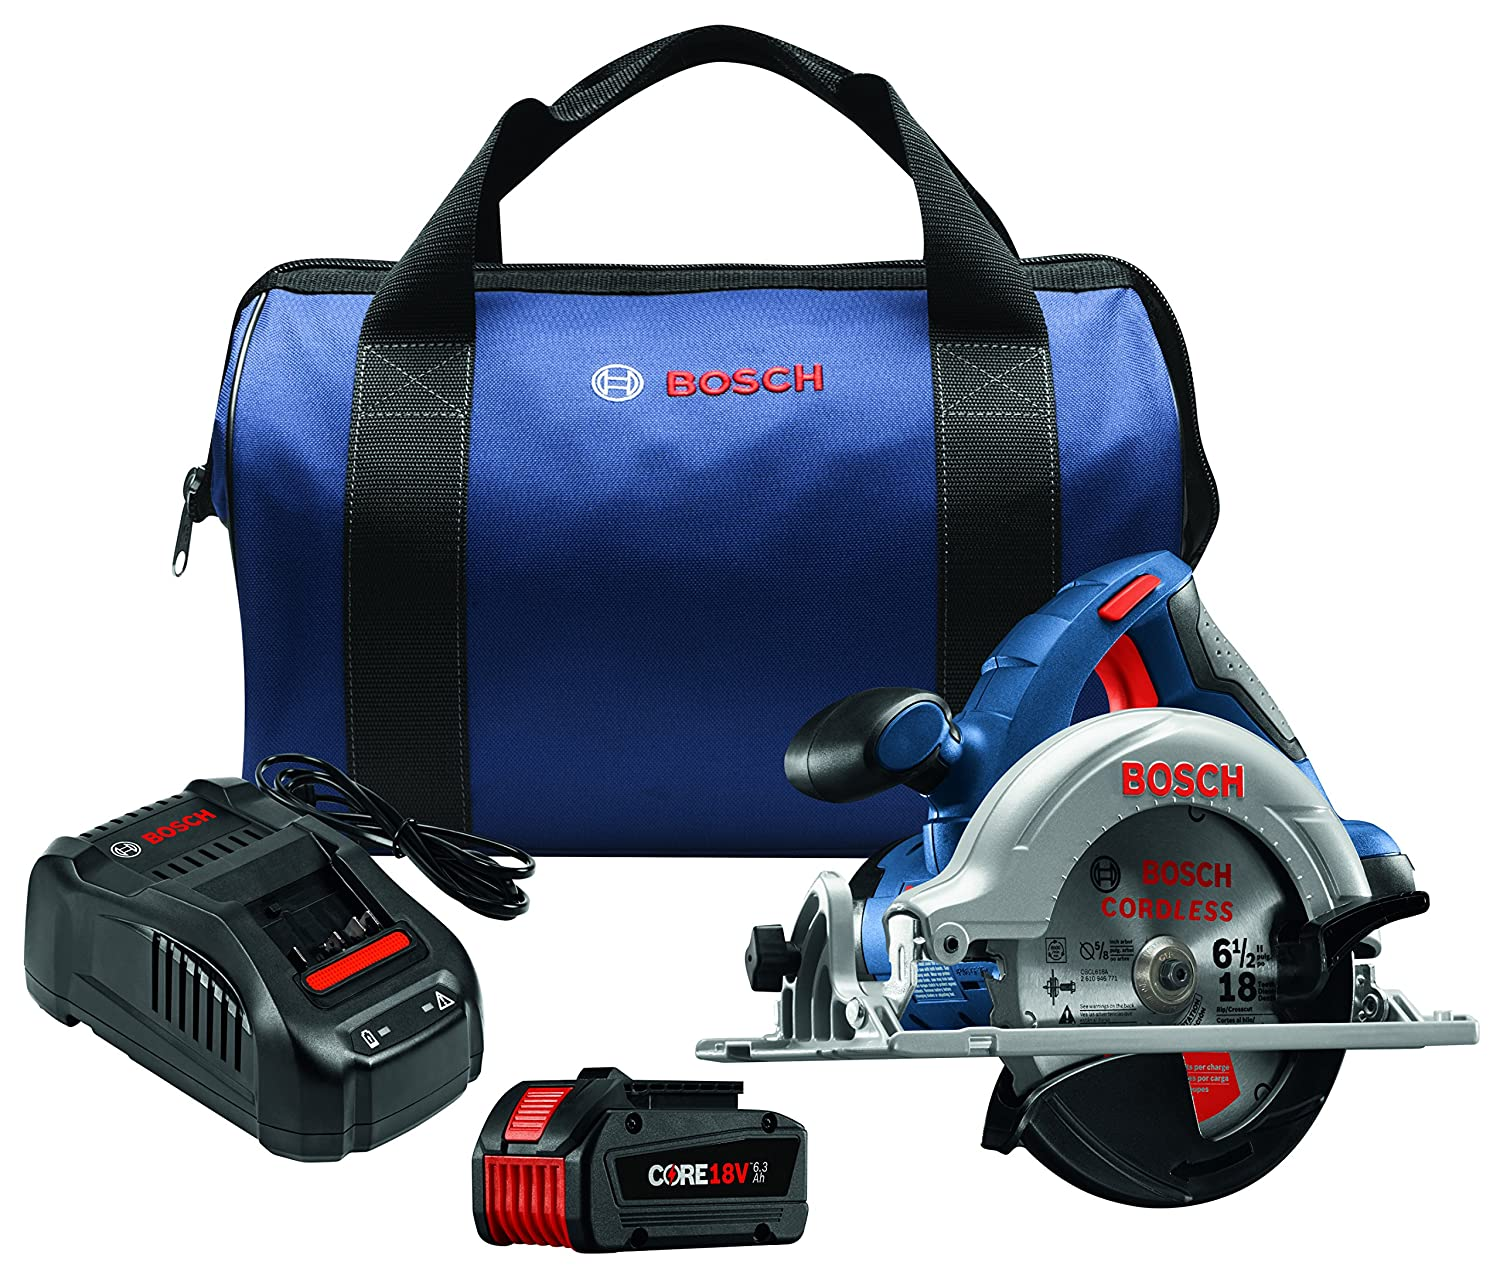 Bosch CCS180-B14 18V 6-1 2 Circular Saw Kit with CORE18V Battery, Blue